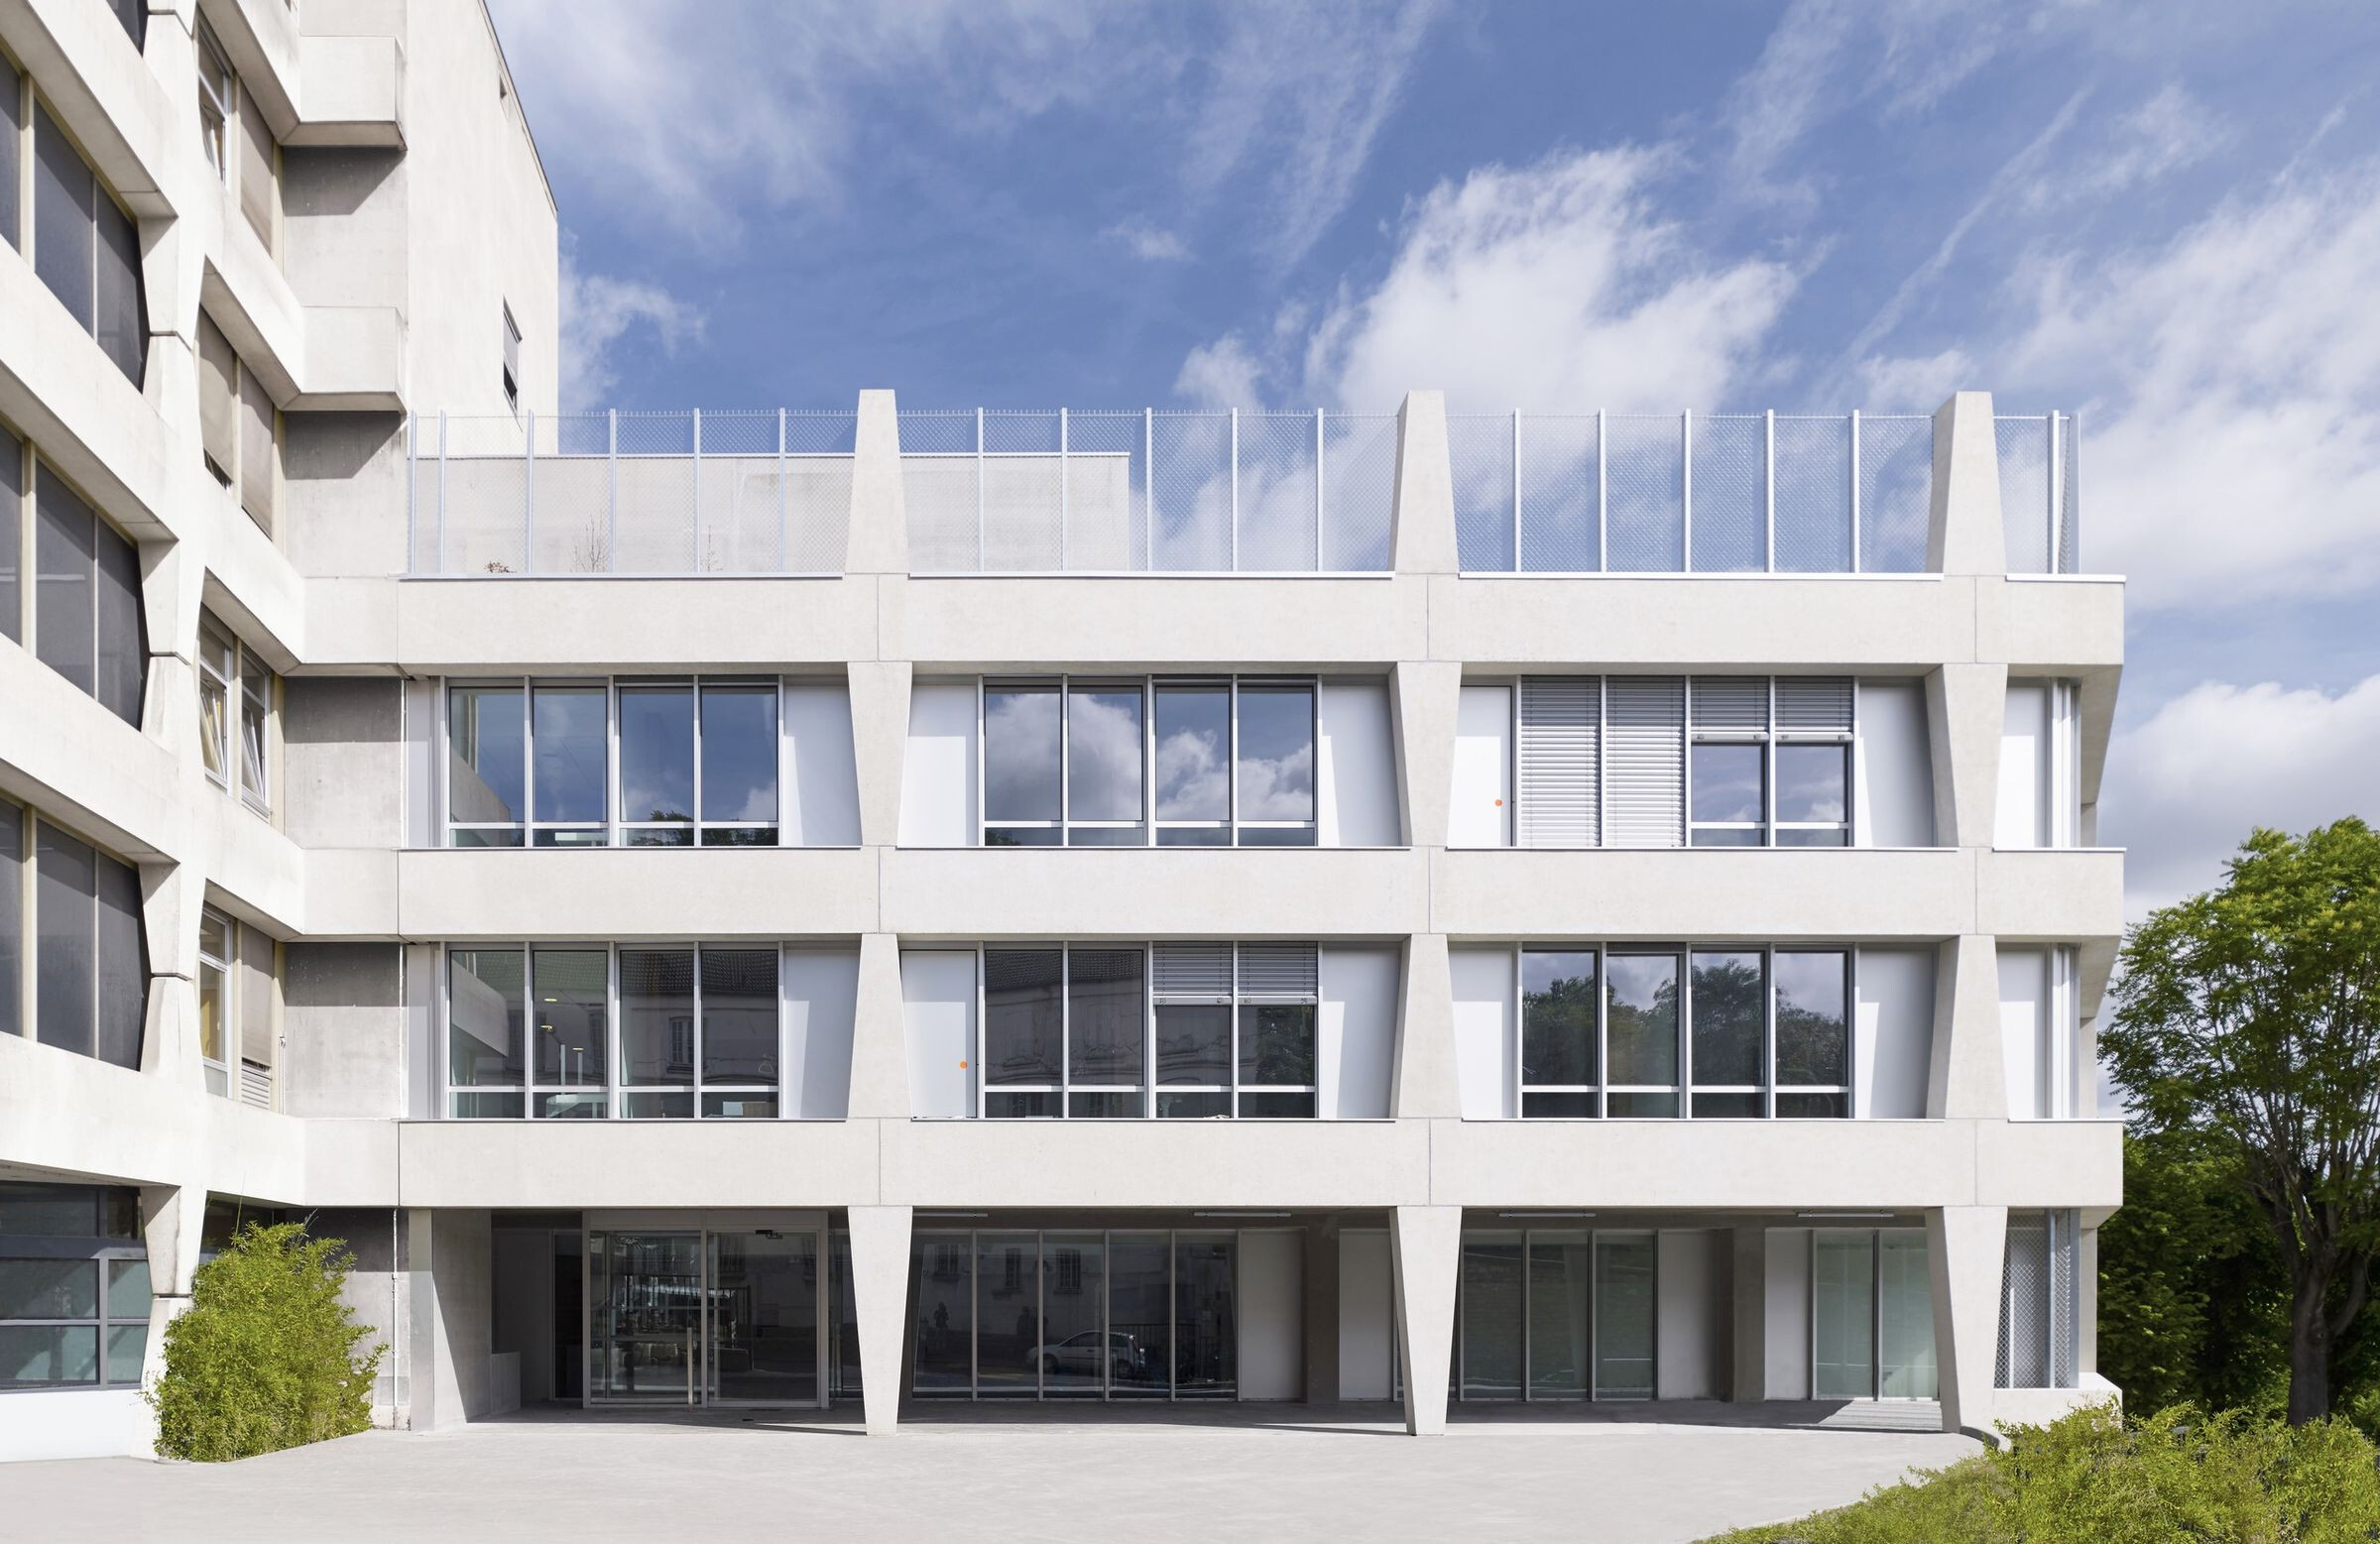 Renovation/Extension Of The Hôpital Suisse In Pari